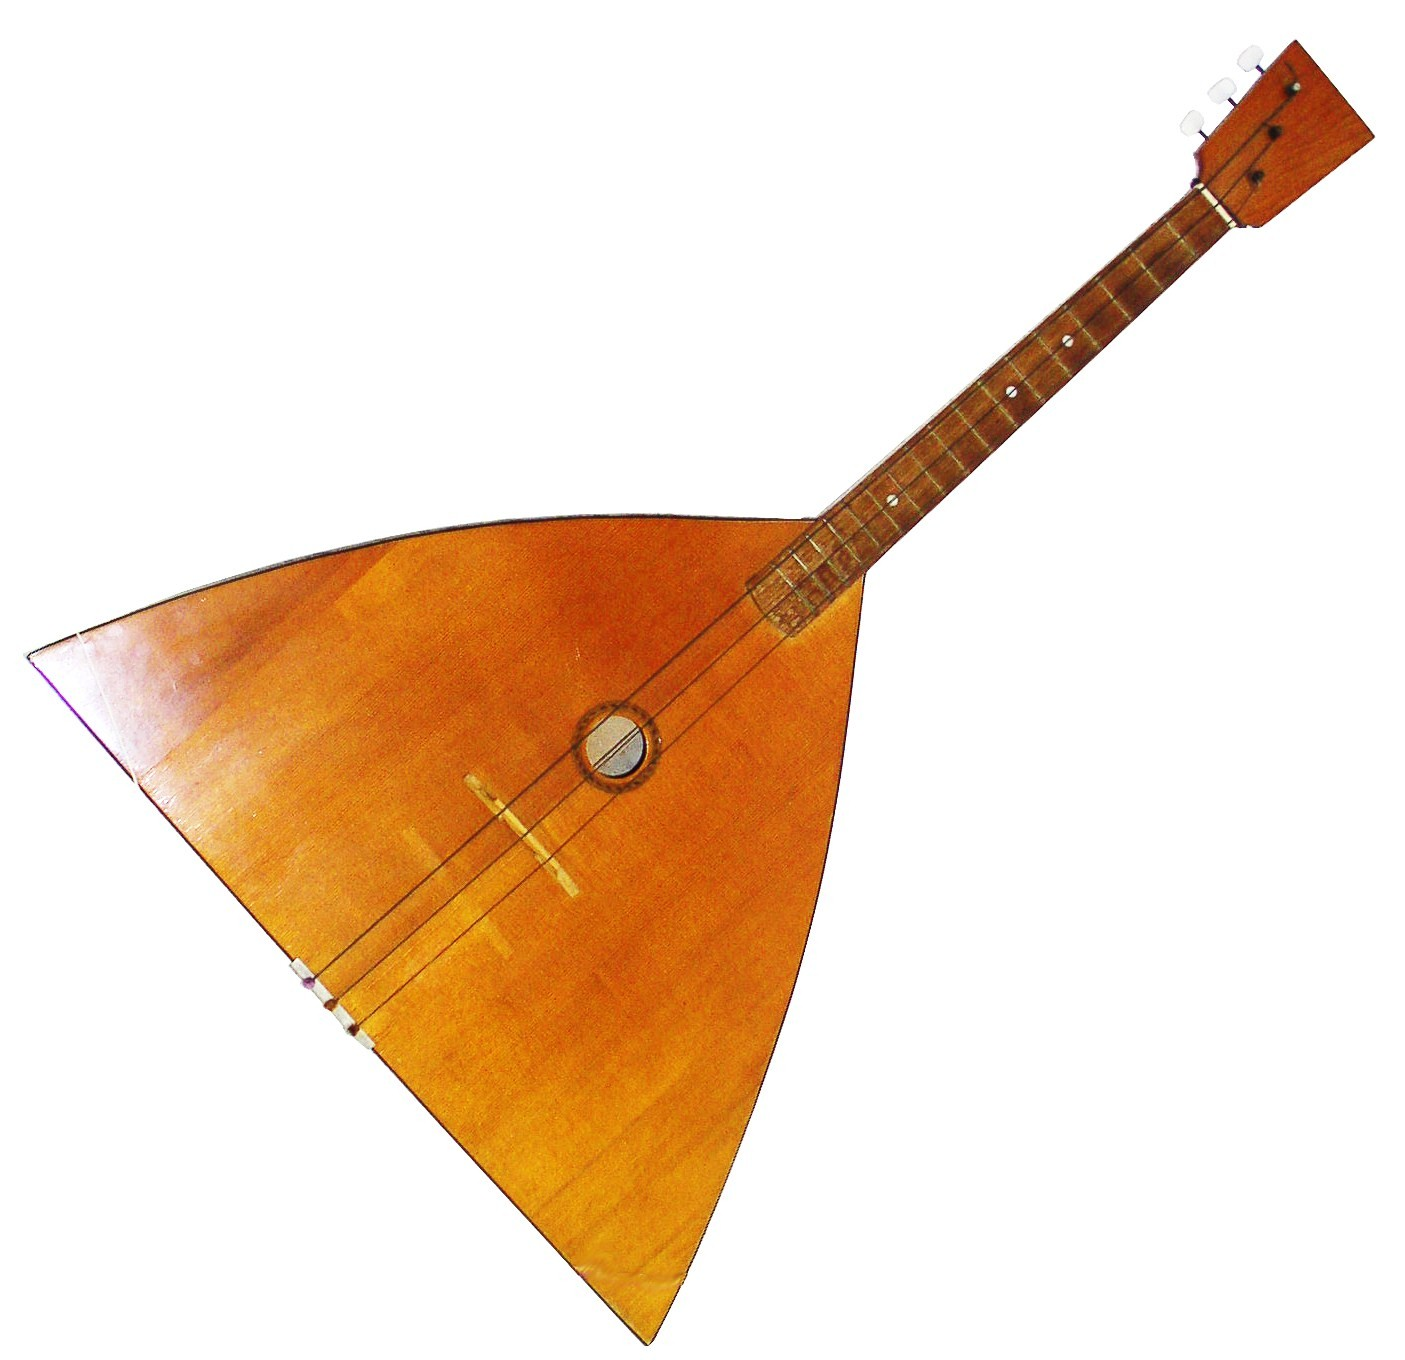 Top 5 Strange Instruments from Across the World